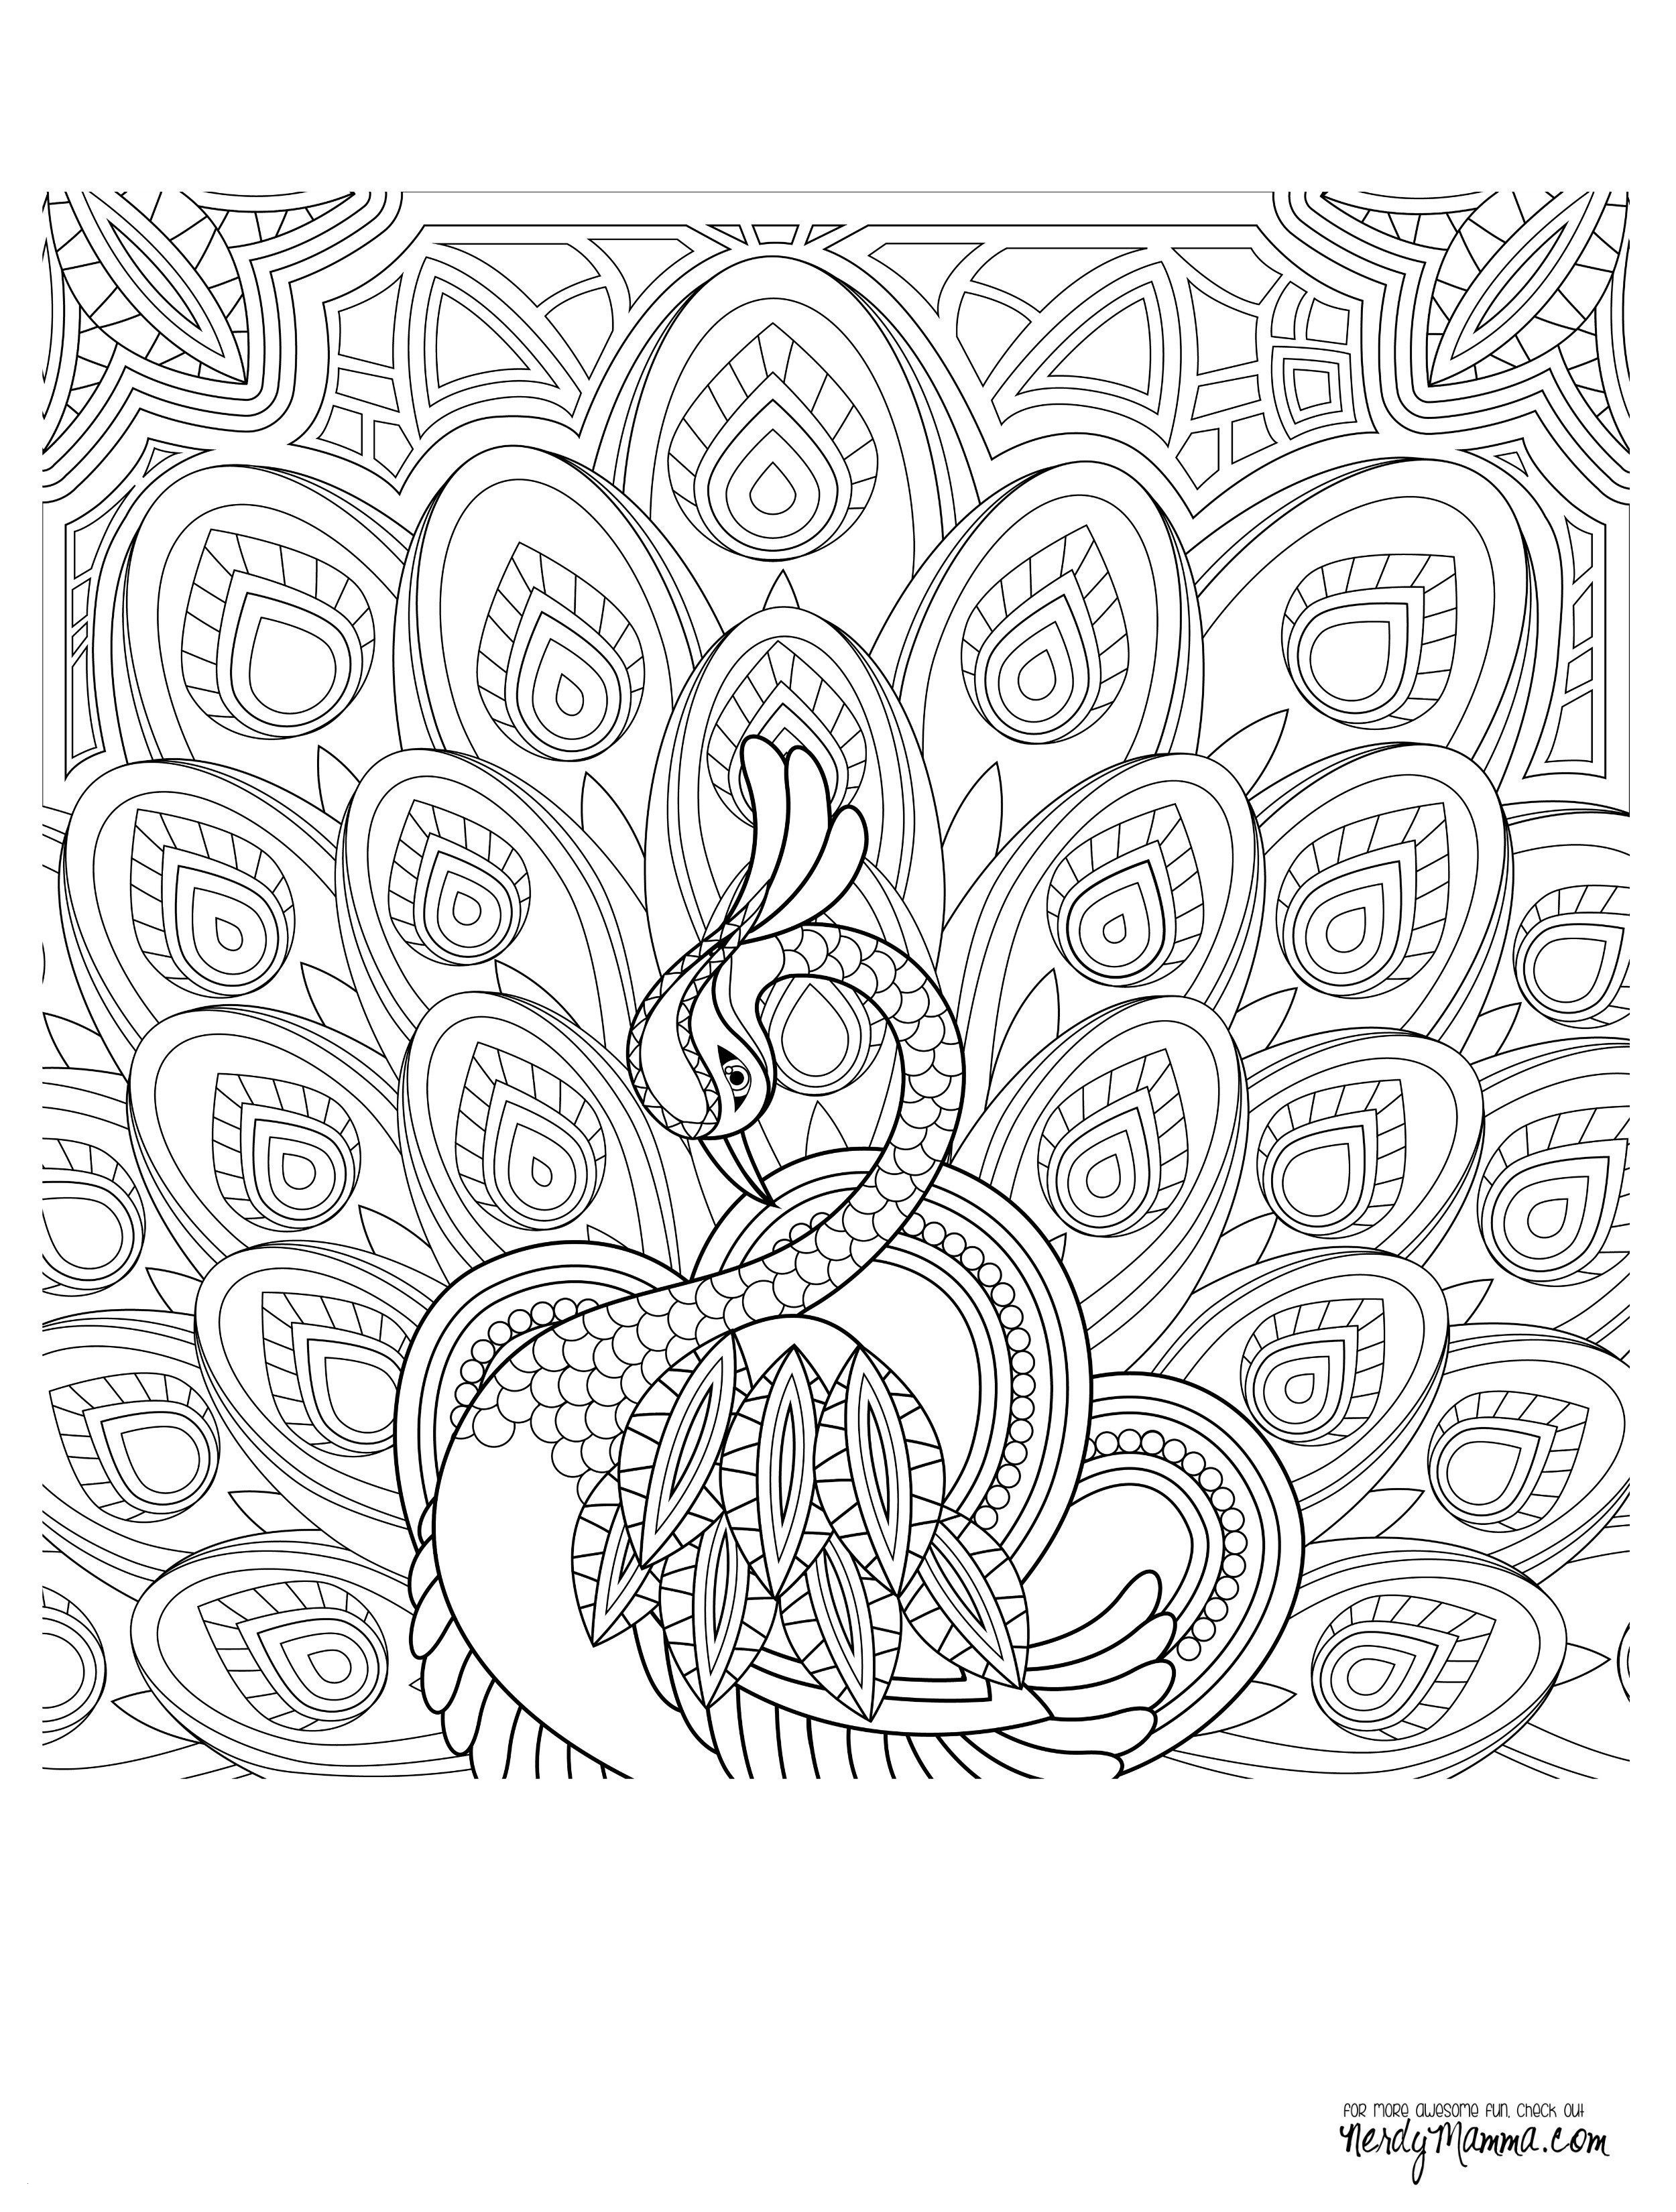 Colored Pencil Coloring Pages  Printable 15d - Save it to your computer